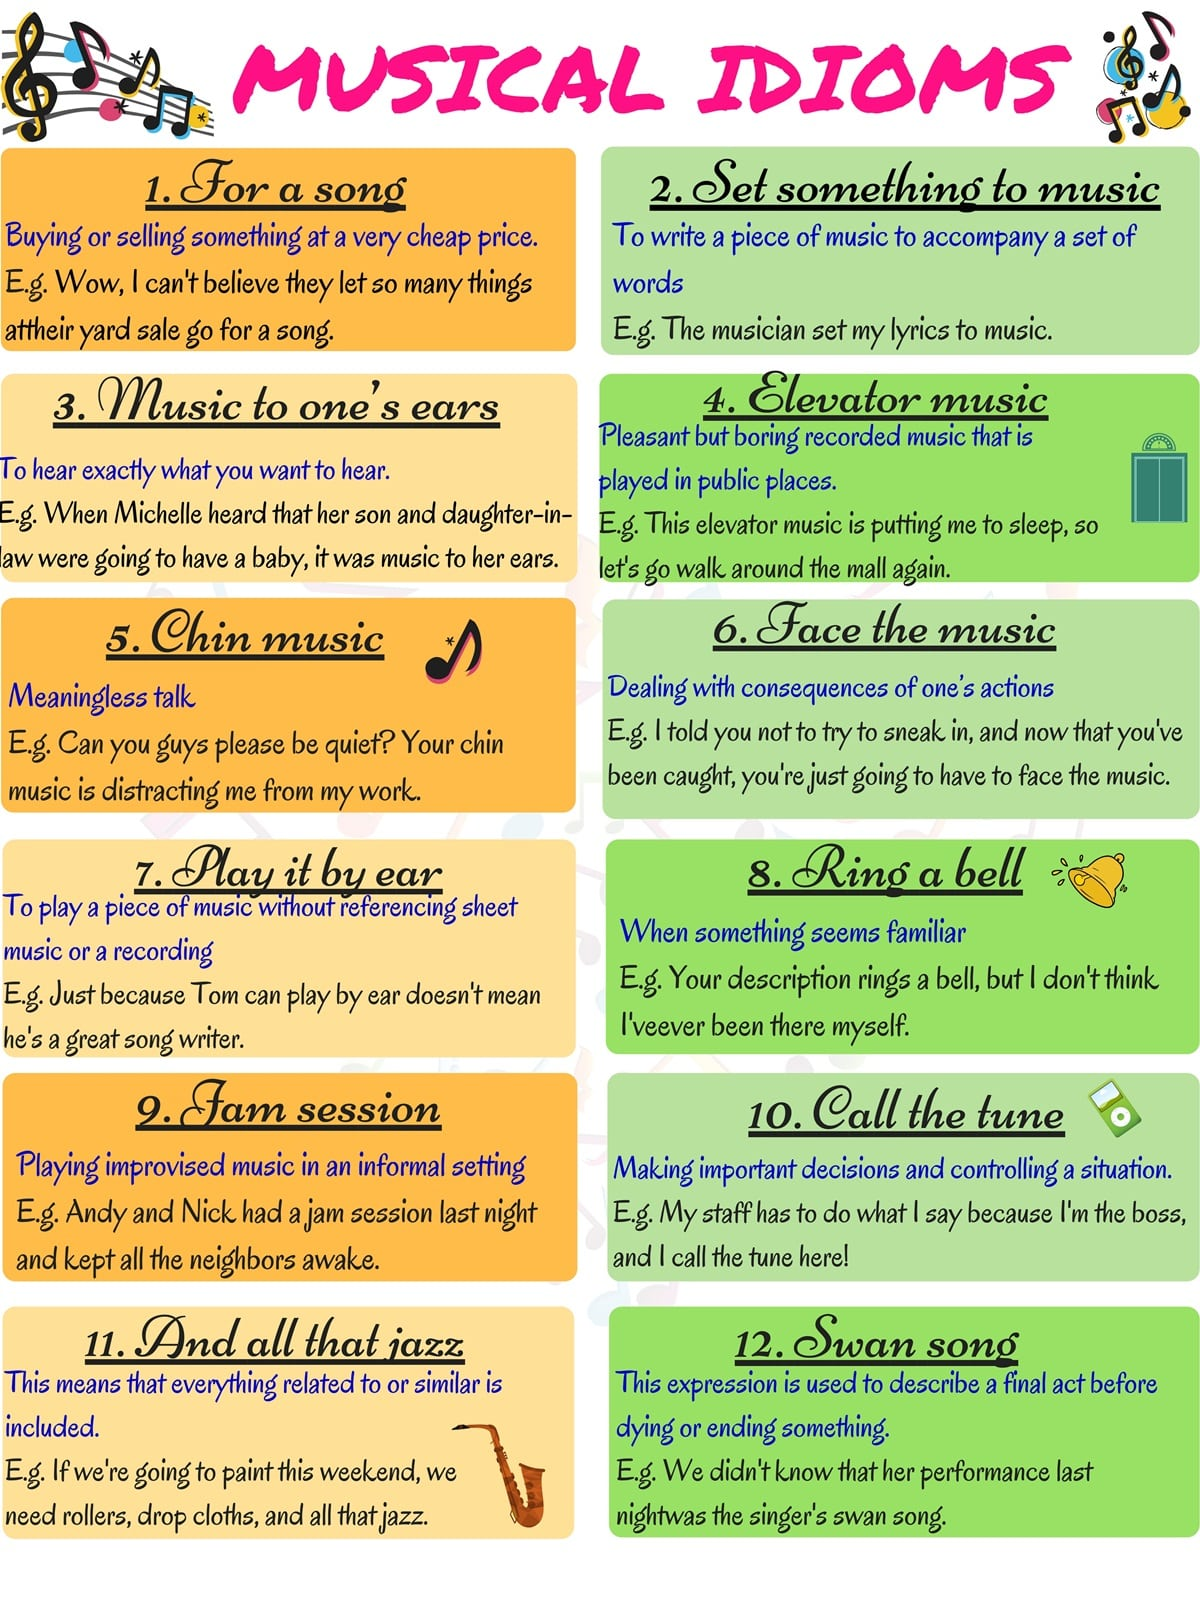 Learn 15 Useful Idioms Related To Music In English